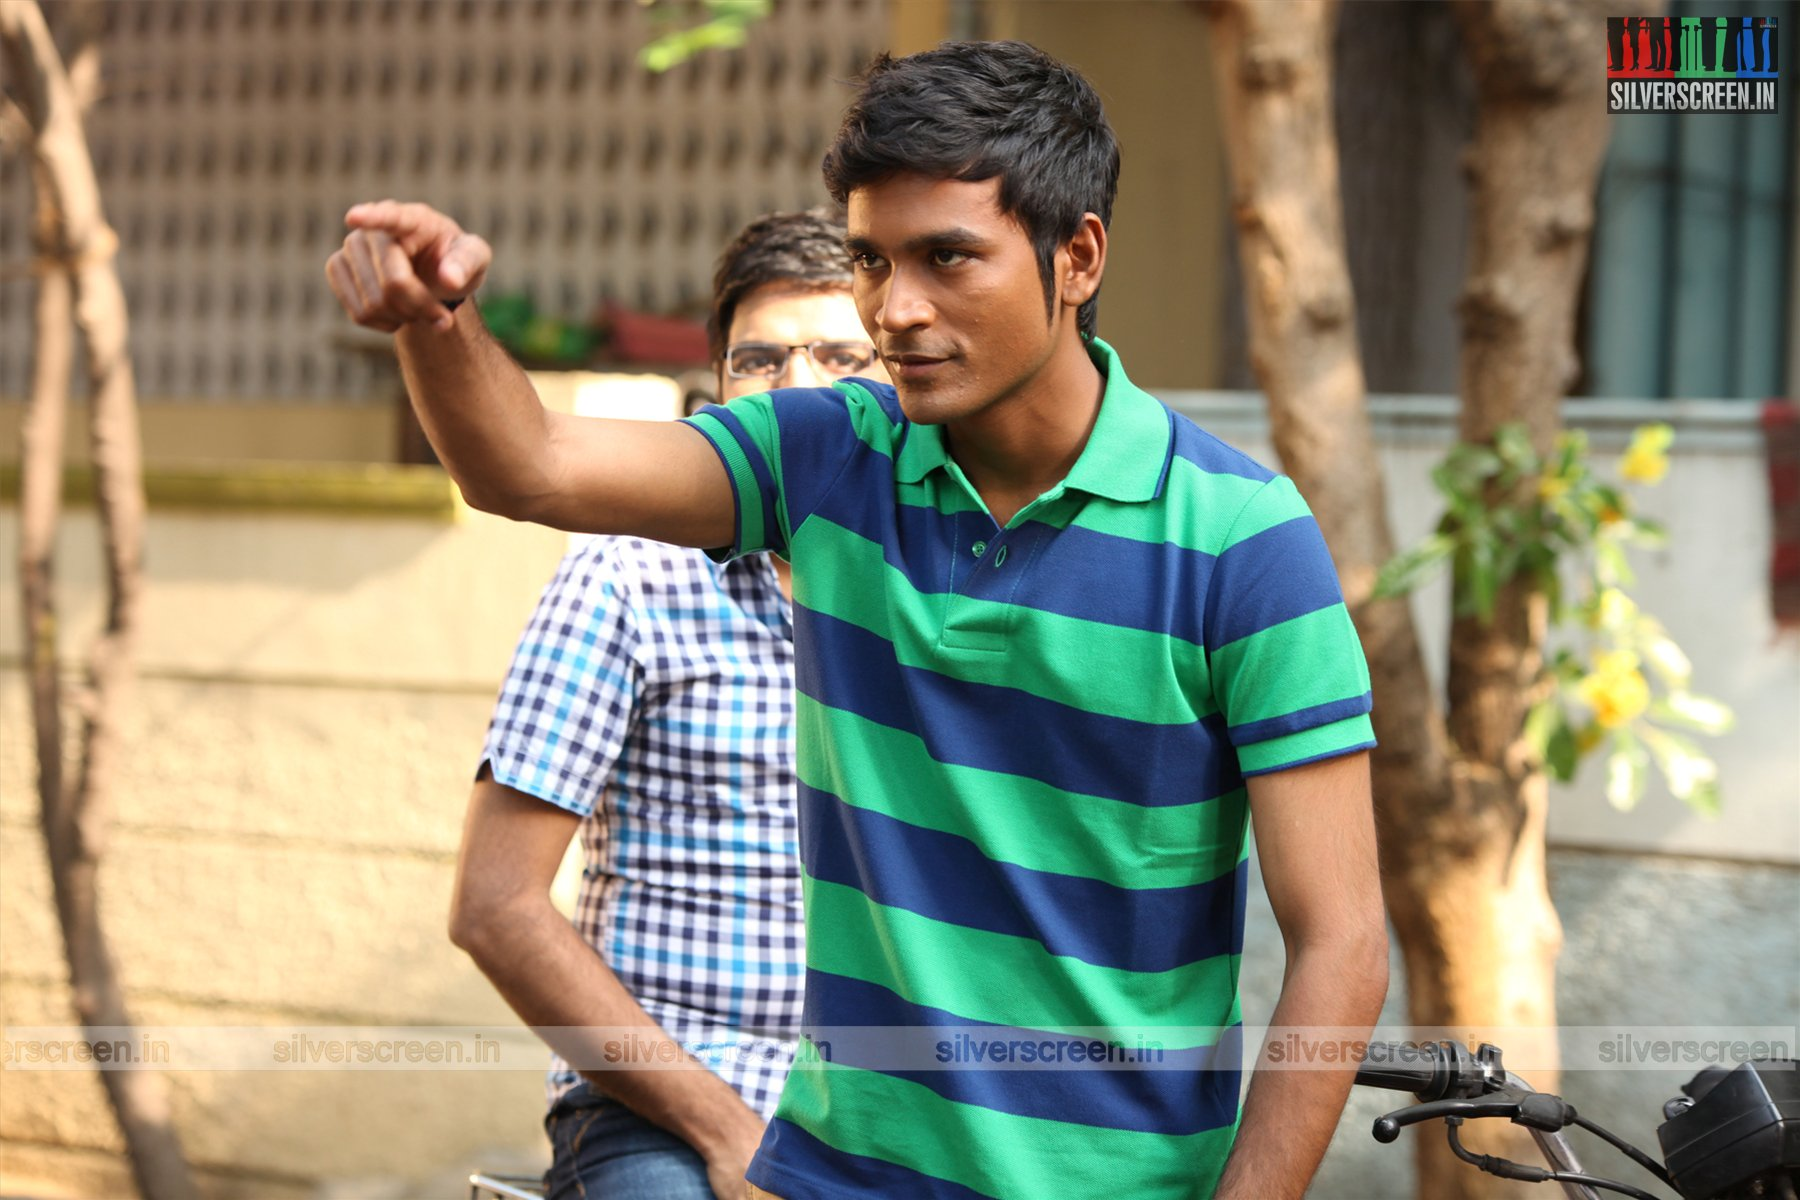 dhanush interview: 'i do not look handsome' | silverscreen.in